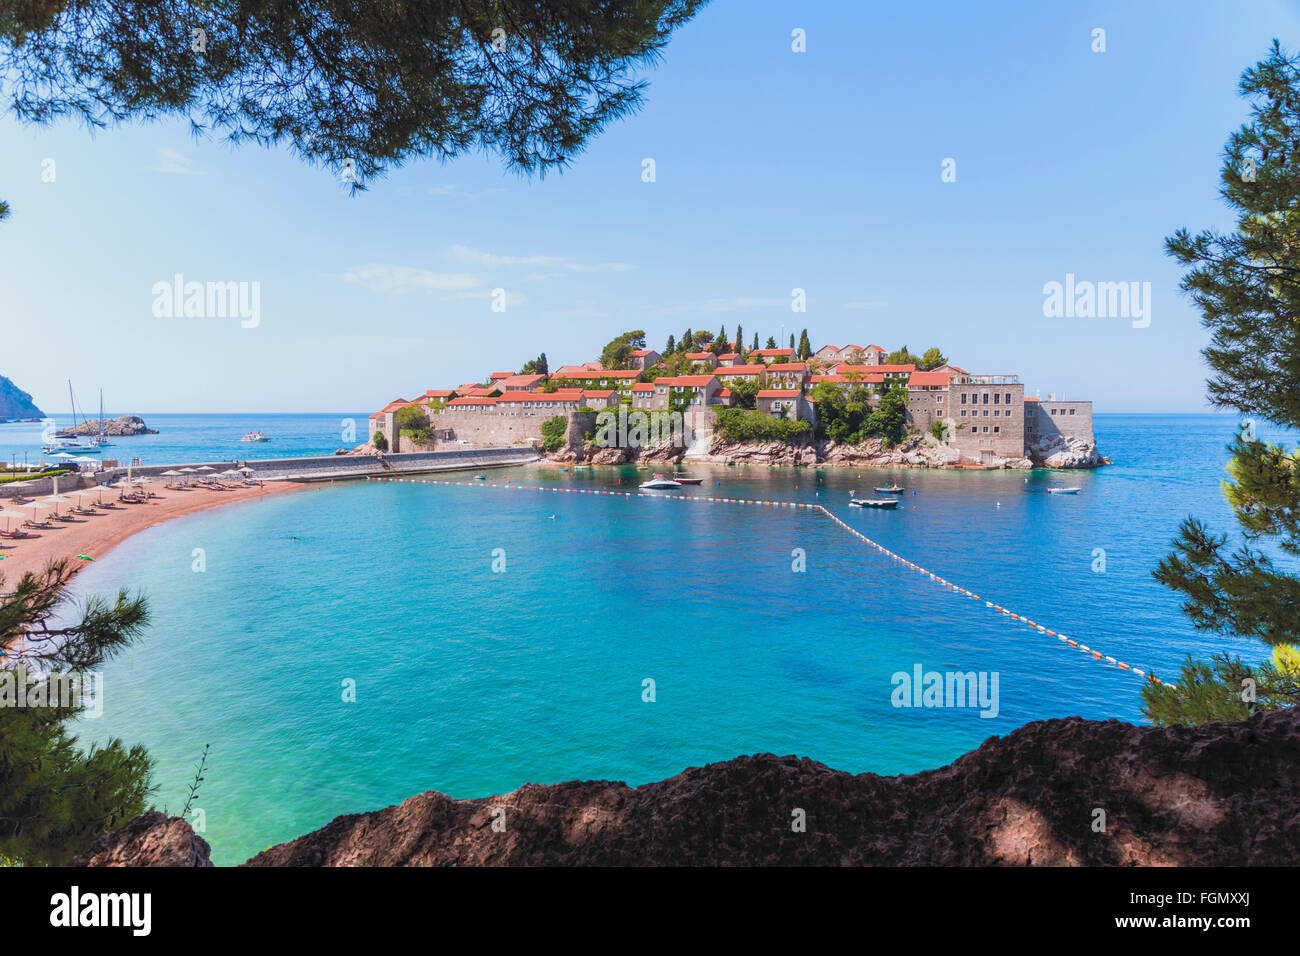 Sveti Stefan, near Budva, Montenegro. Stock Photo